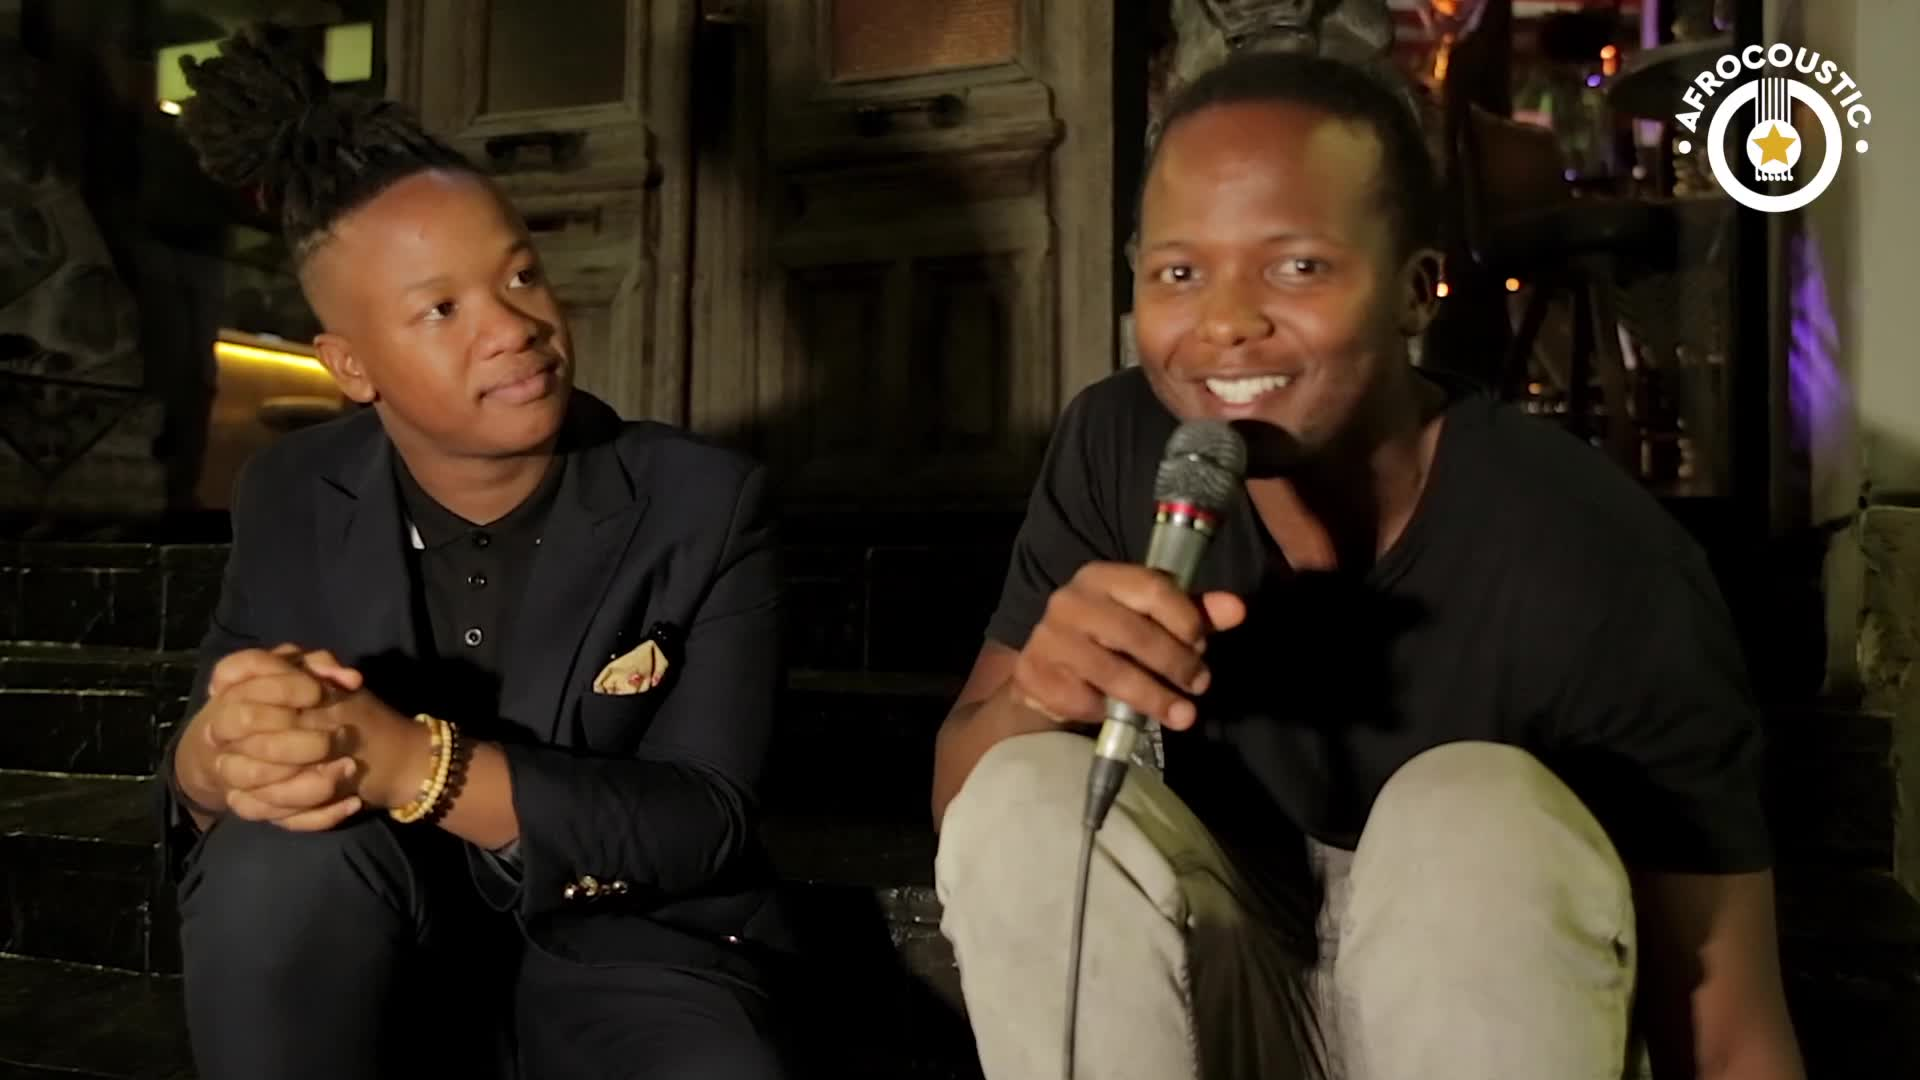 Afrocoustic - Luis The Don - Interview